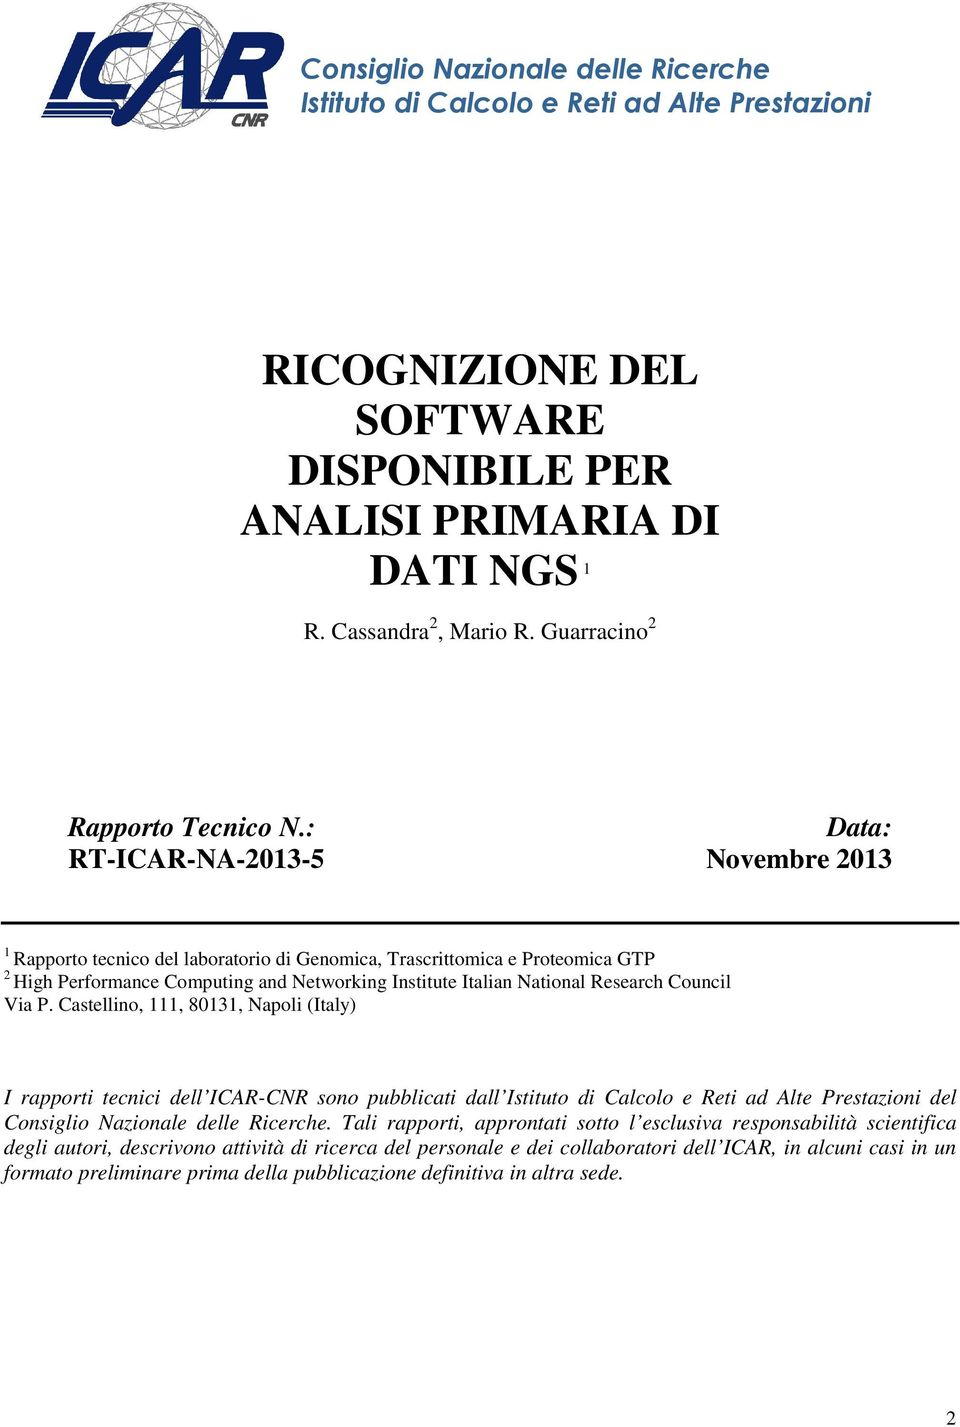 : RT-ICAR-NA-2013-5 Data: Novembre 2013 1 Rapporto tecnico del laboratorio di Genomica, Trascrittomica e Proteomica GTP 2 High Performance Computing and Networking Institute Italian National Research